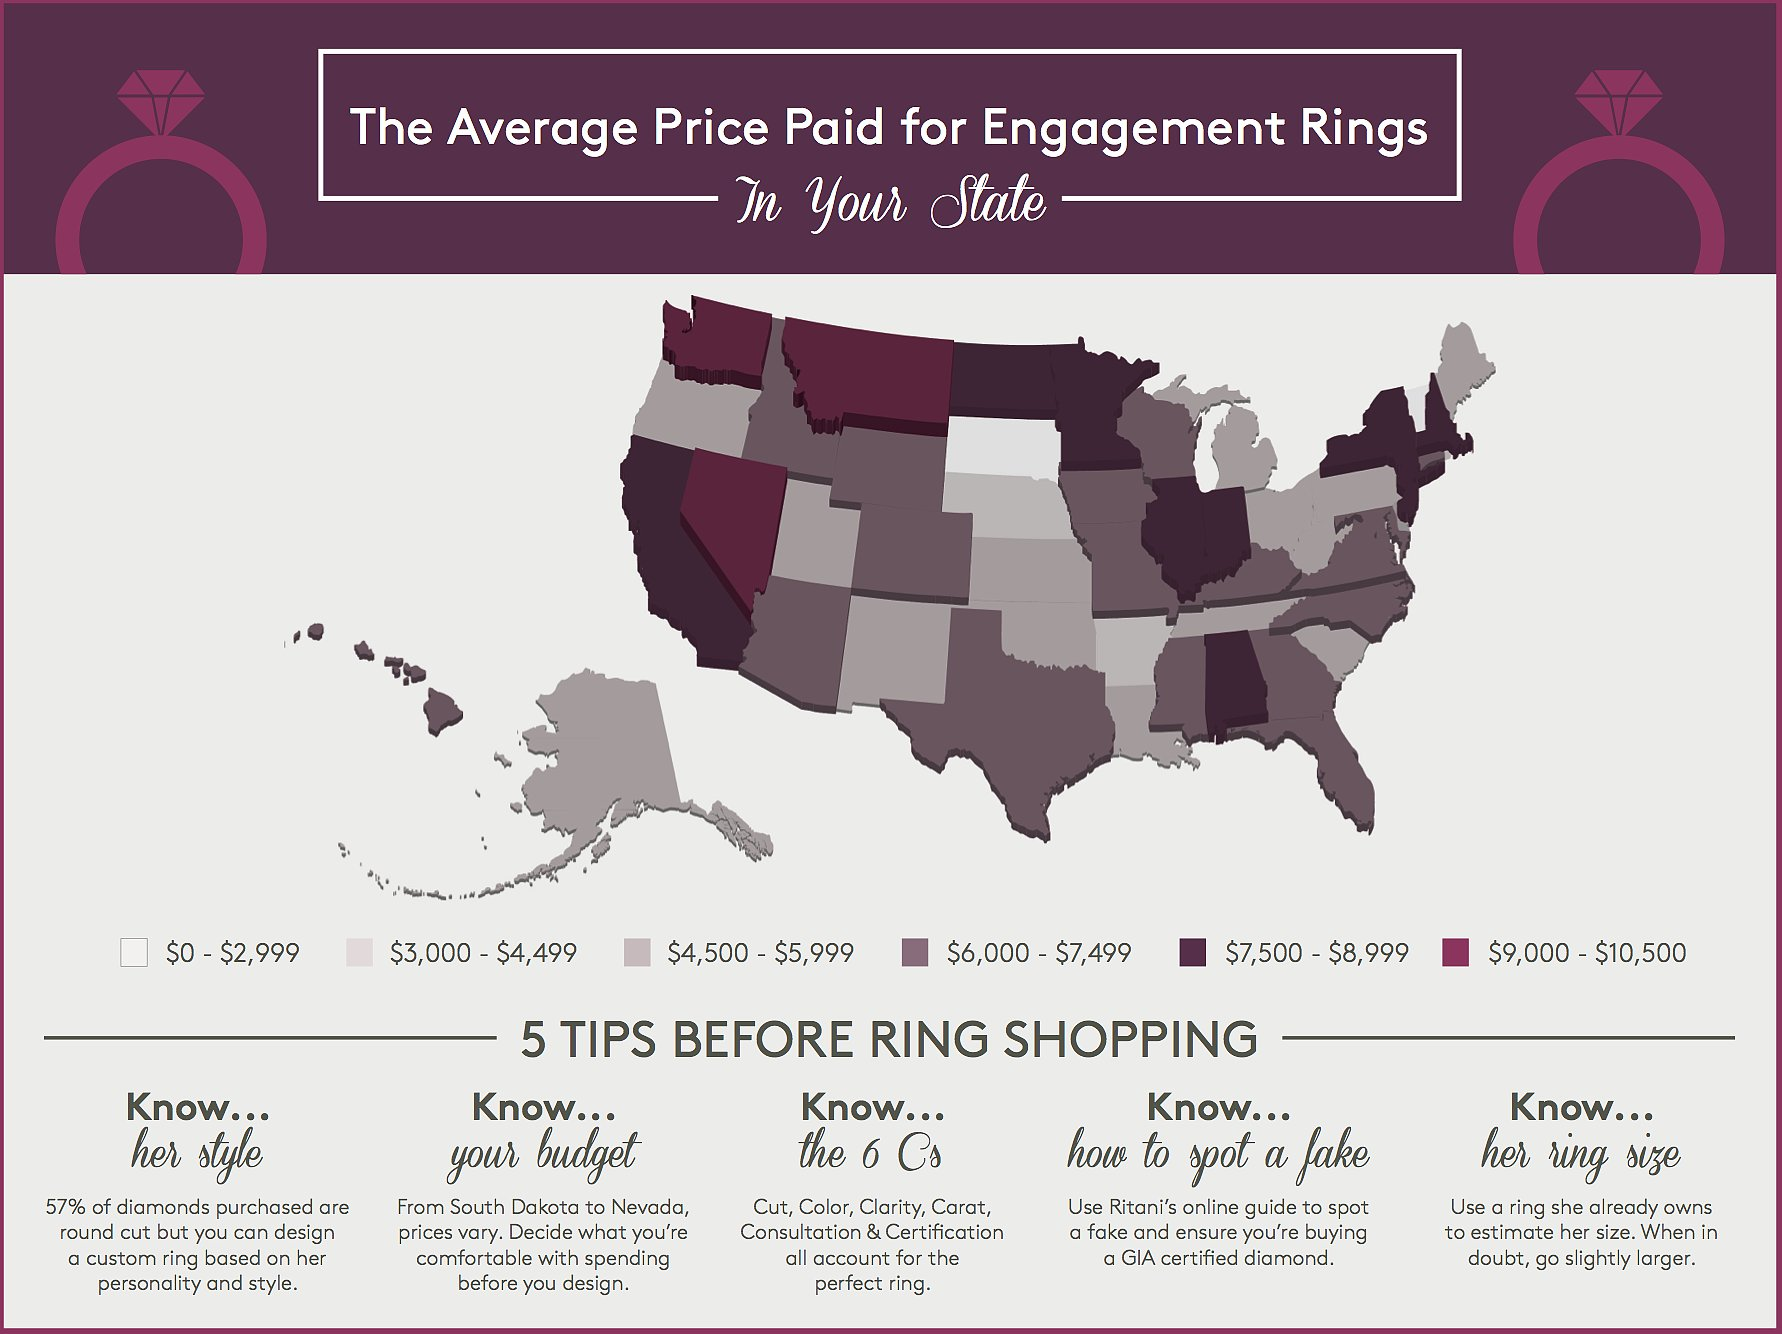 Average Cost of Engagement Rings